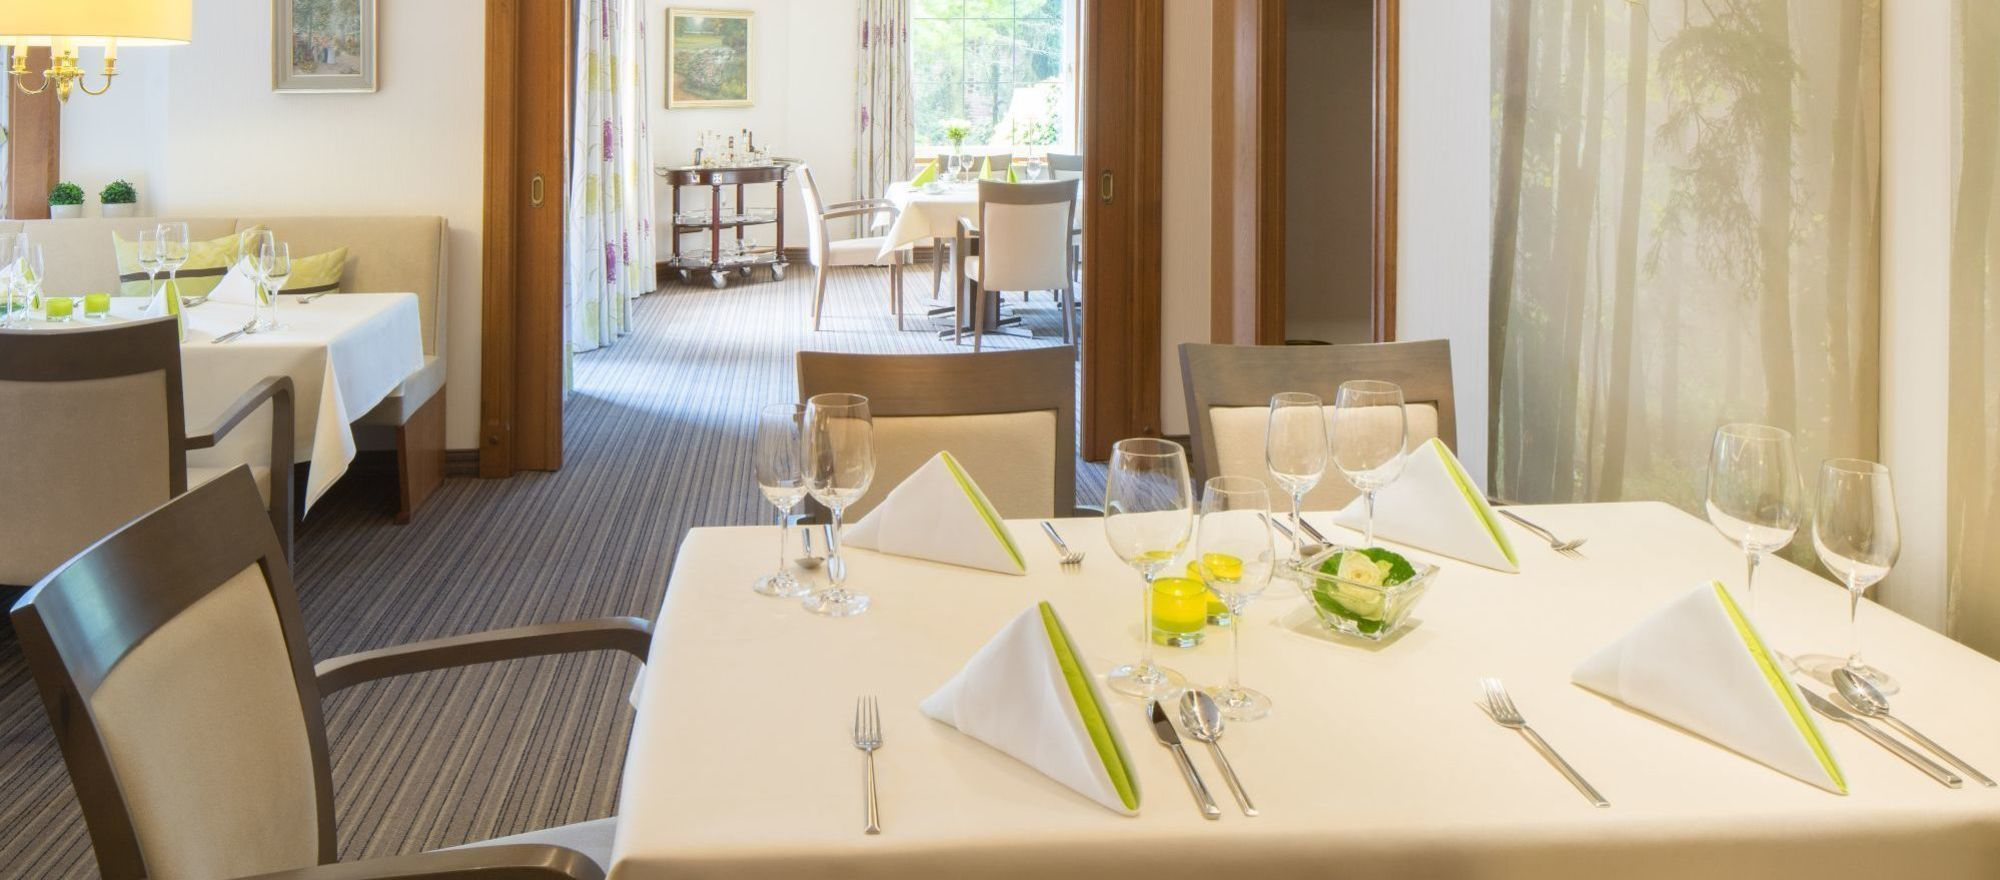 In the restaurant of the 4-star-superior hotel Ringhotel Celler Tor in Celle we serves a range of regional specialties, as well as light, international fare